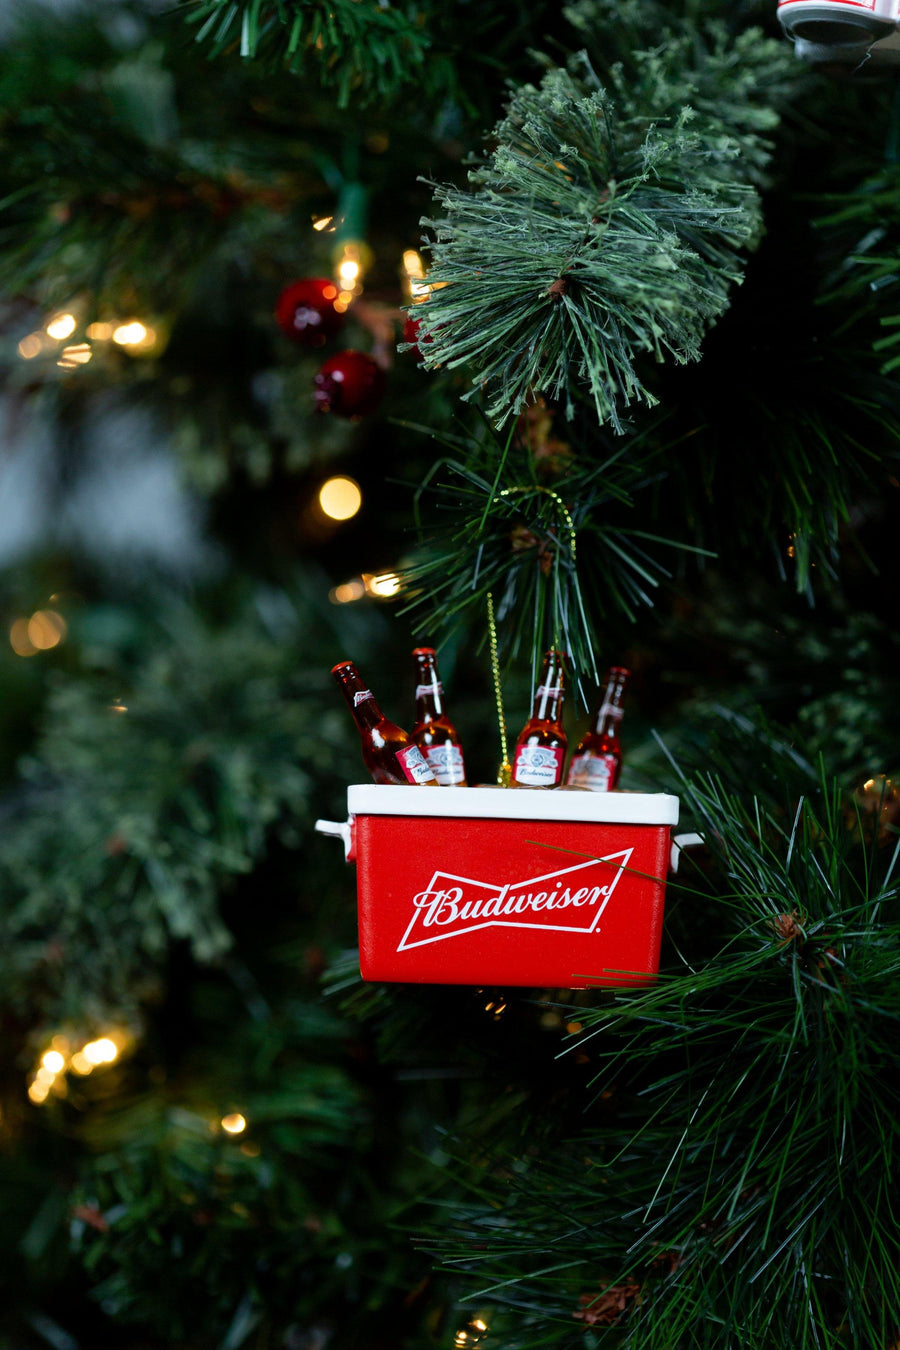 Budweiser Bottles in Cooler Ornament